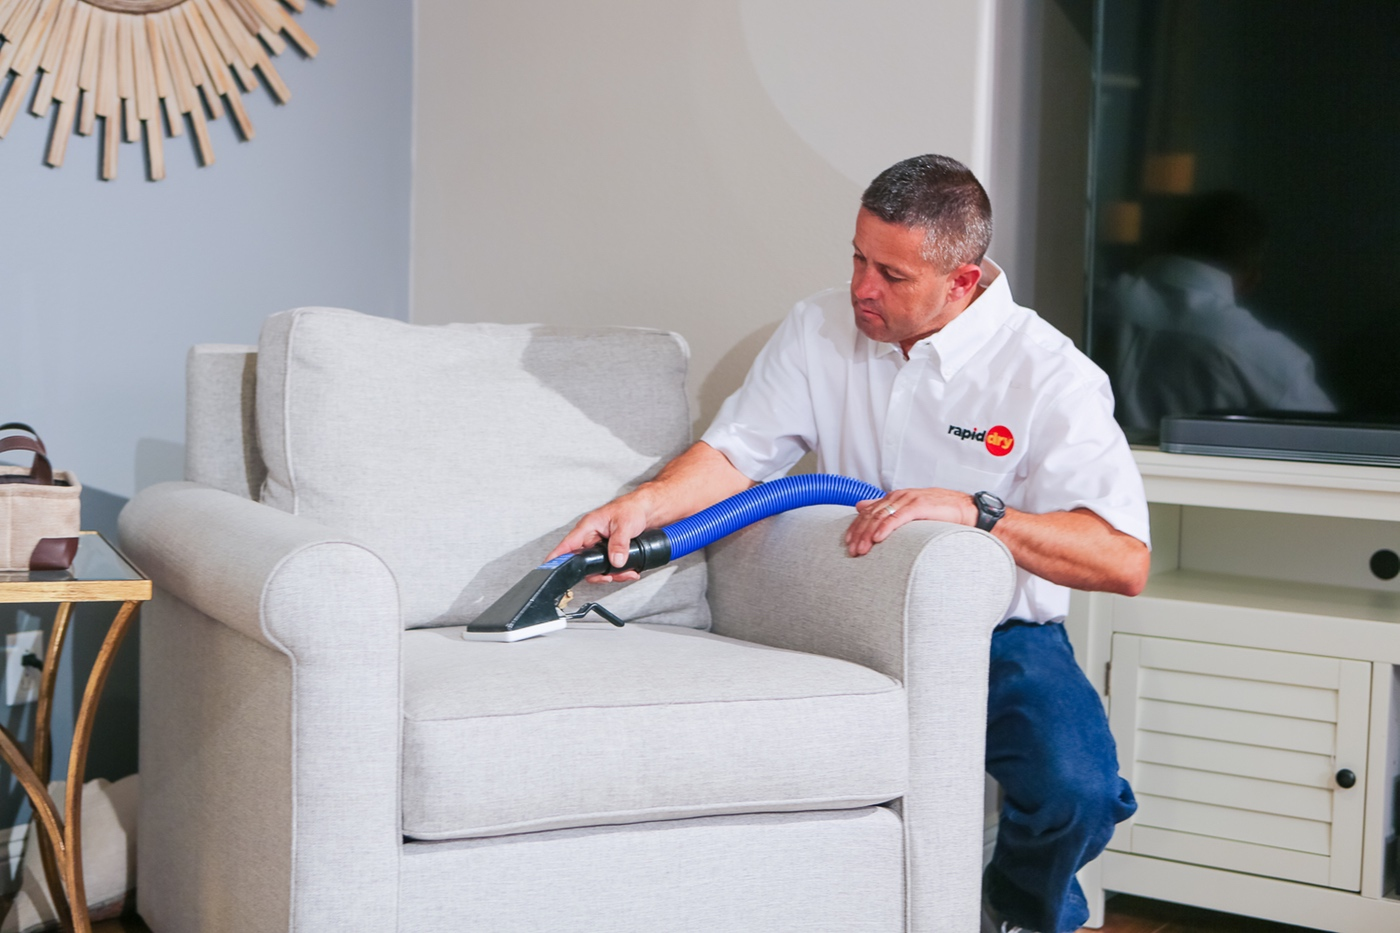 sofa dry cleaner in delhi twin convertible bed rapid restoration upholstery cleaning